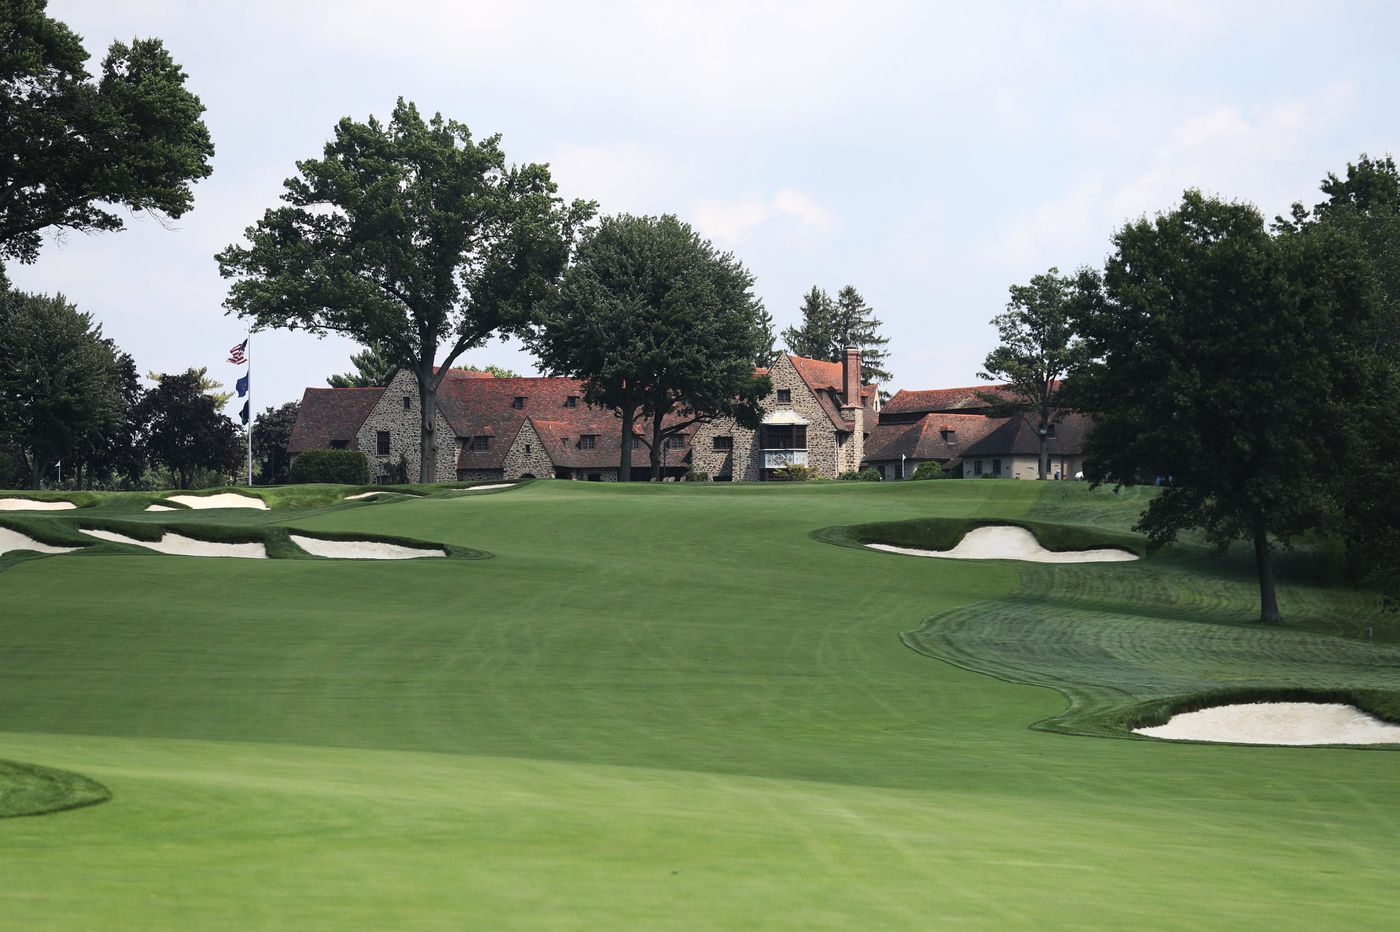 Aronimink, hosting the BMW Championship, is ready for its close-up